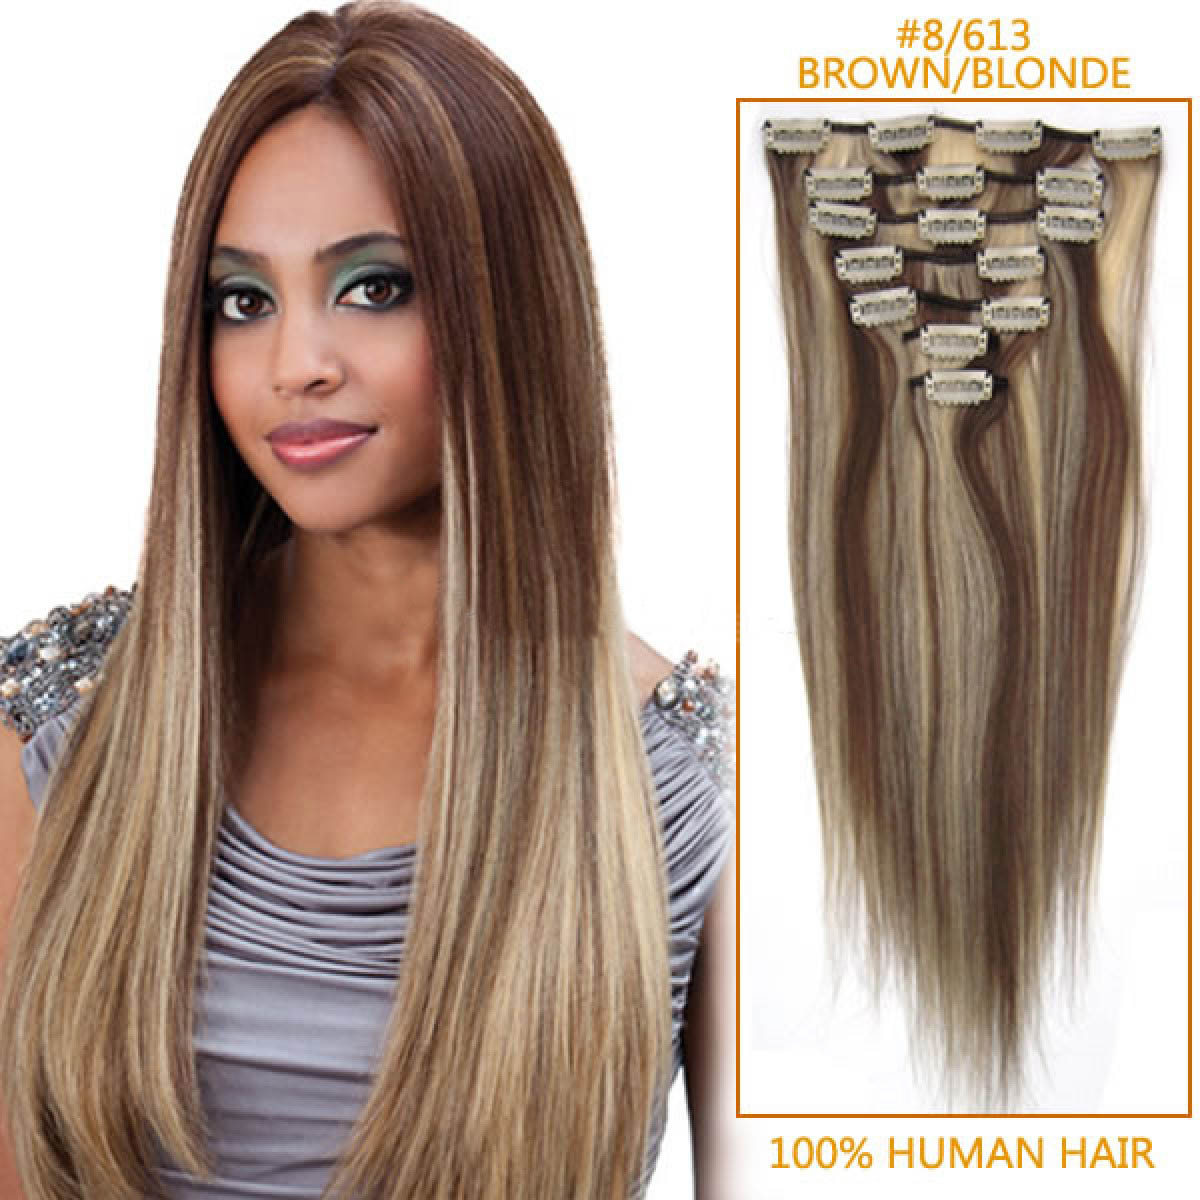 Inch 8613 brownblonde clip in remy human hair extensions 12pcs 24 inch 8613 brownblonde clip in remy human hair extensions 12pcs pmusecretfo Image collections